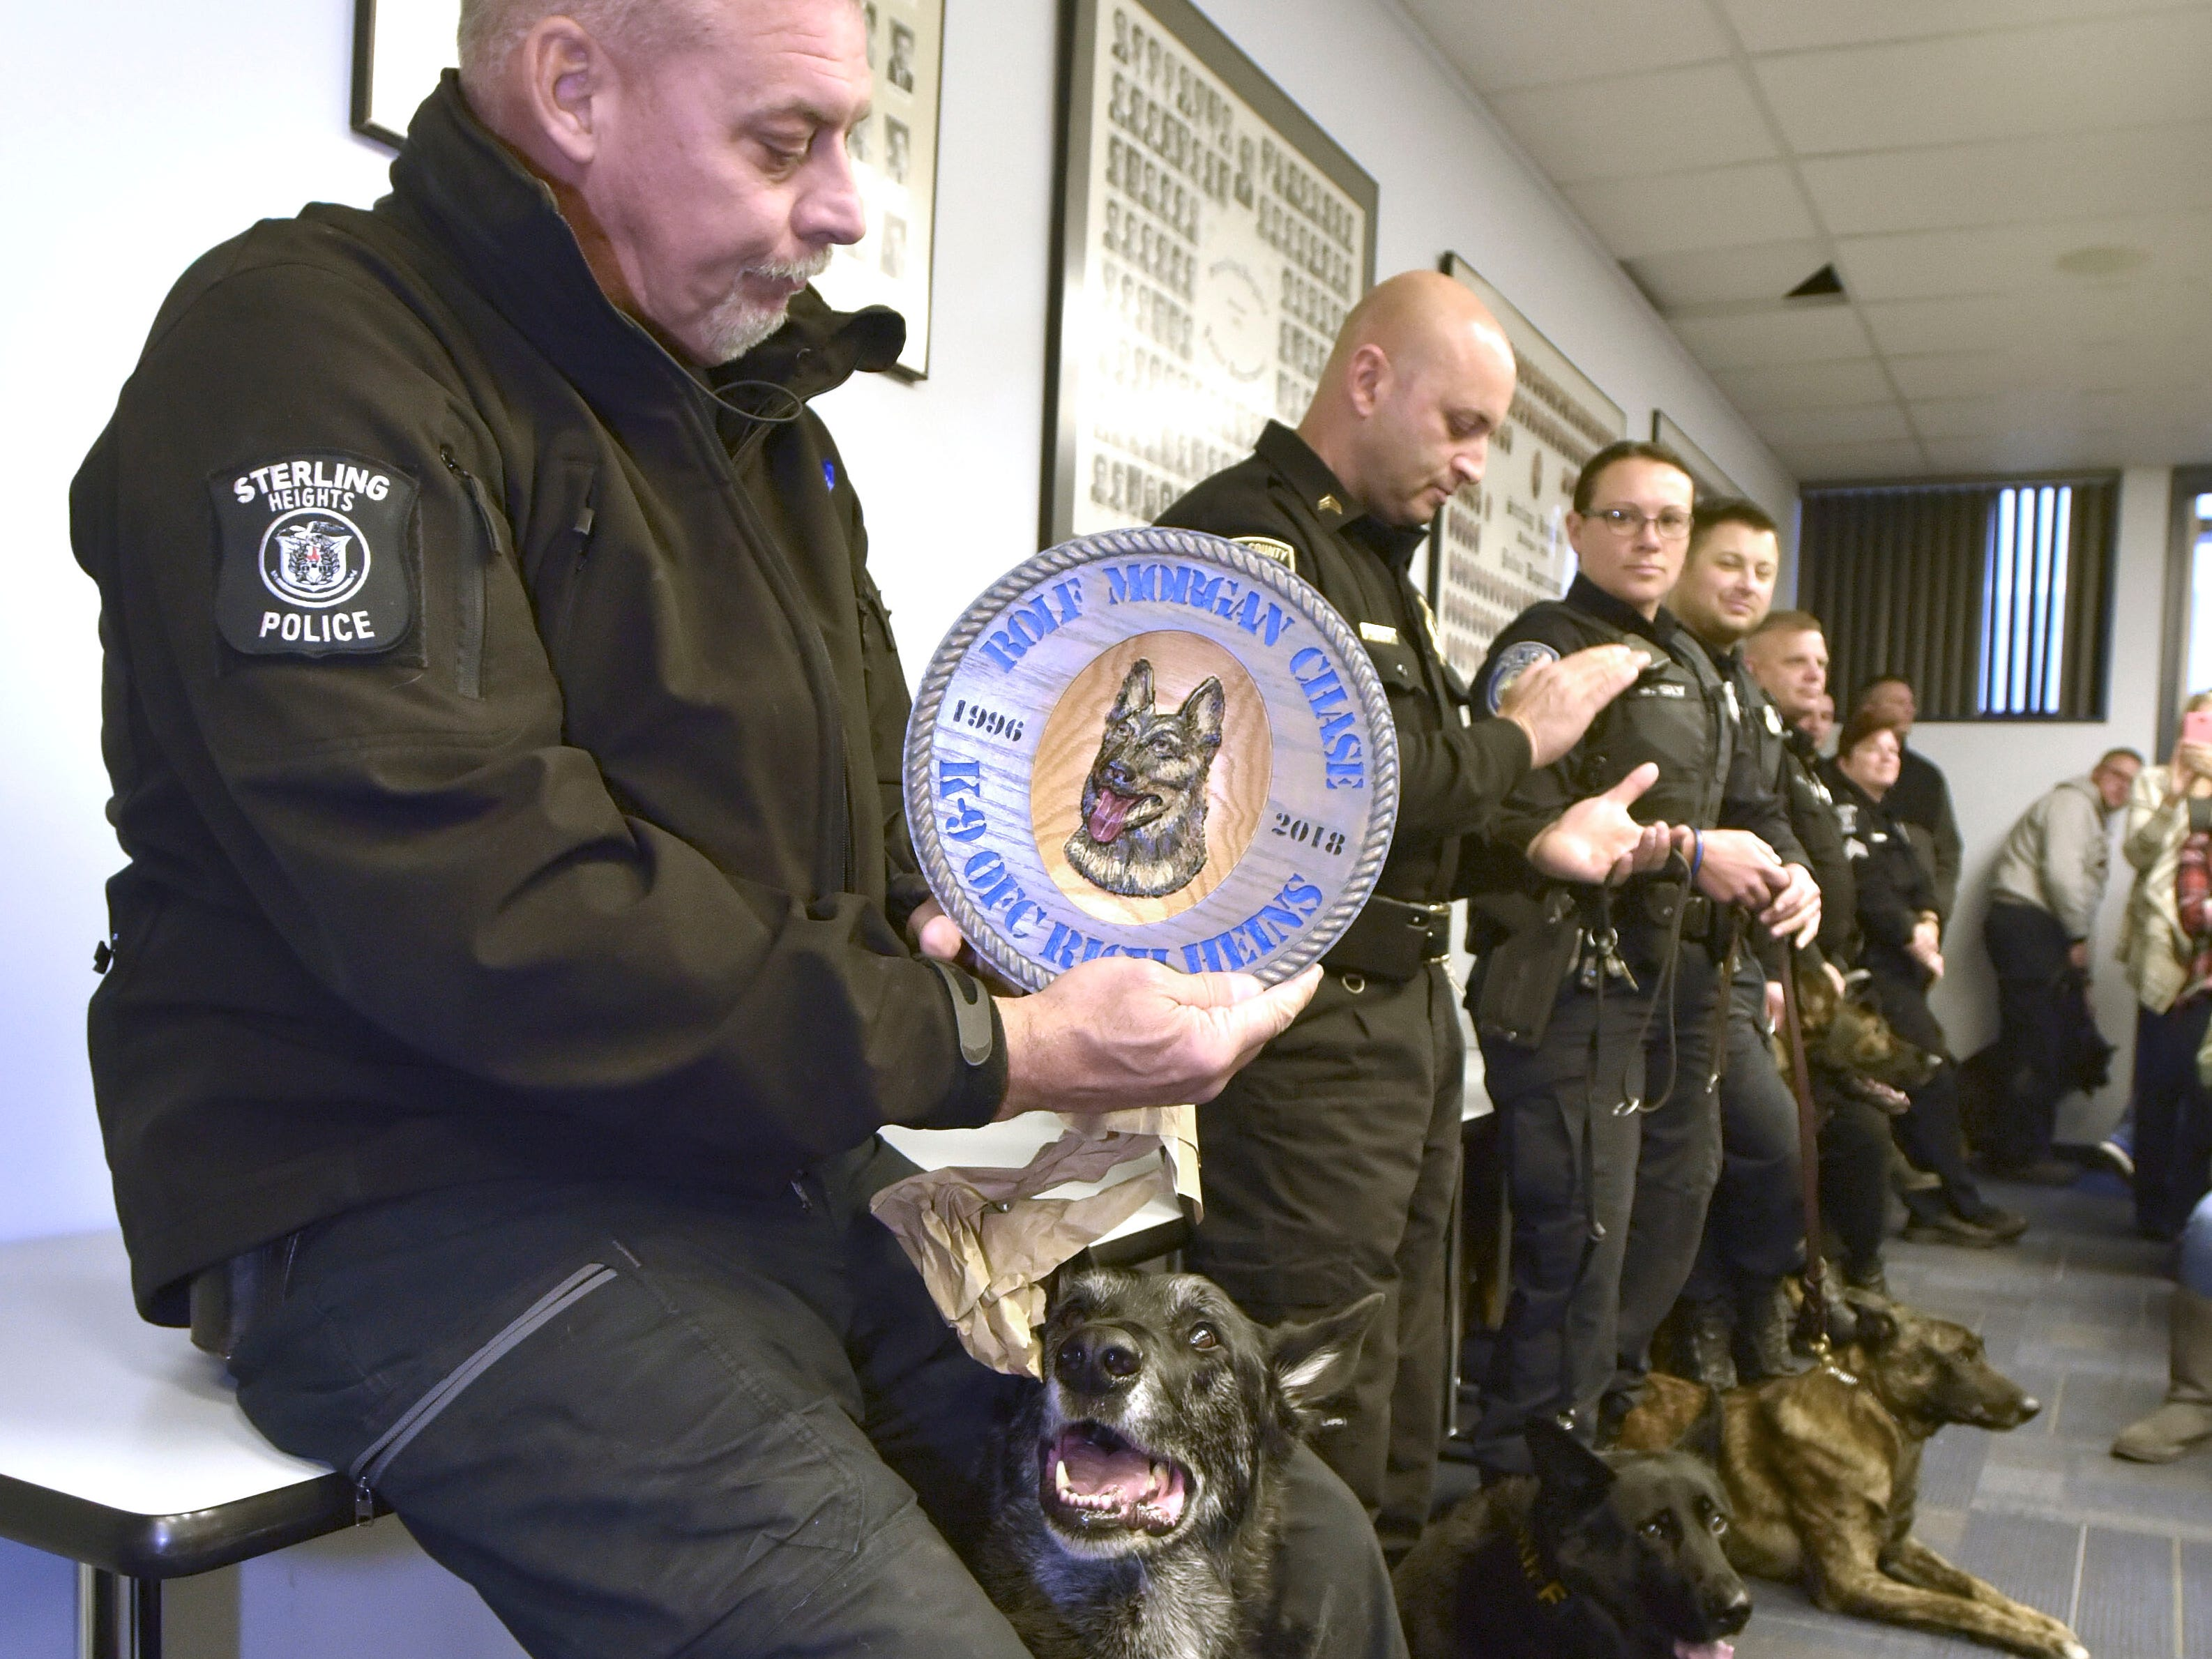 Sterling Heights Police K-9 officer Rich Heins tries to contain his emotions as he opens a present from his good friend Walt Garon, not shown, who retired from the department.